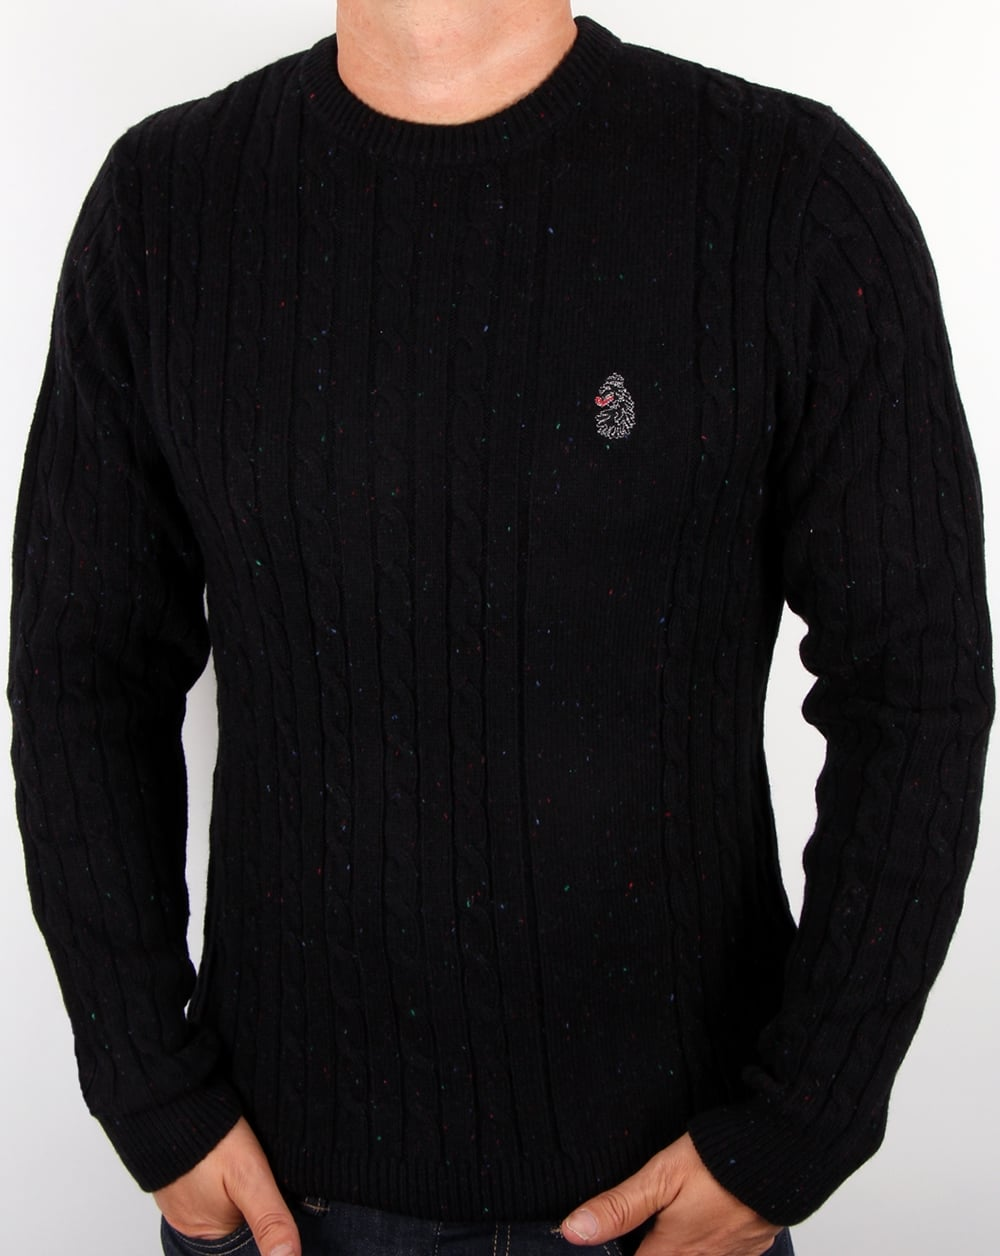 Luke Luke Horton Cable Knit Jumper Black 31217e3b090d